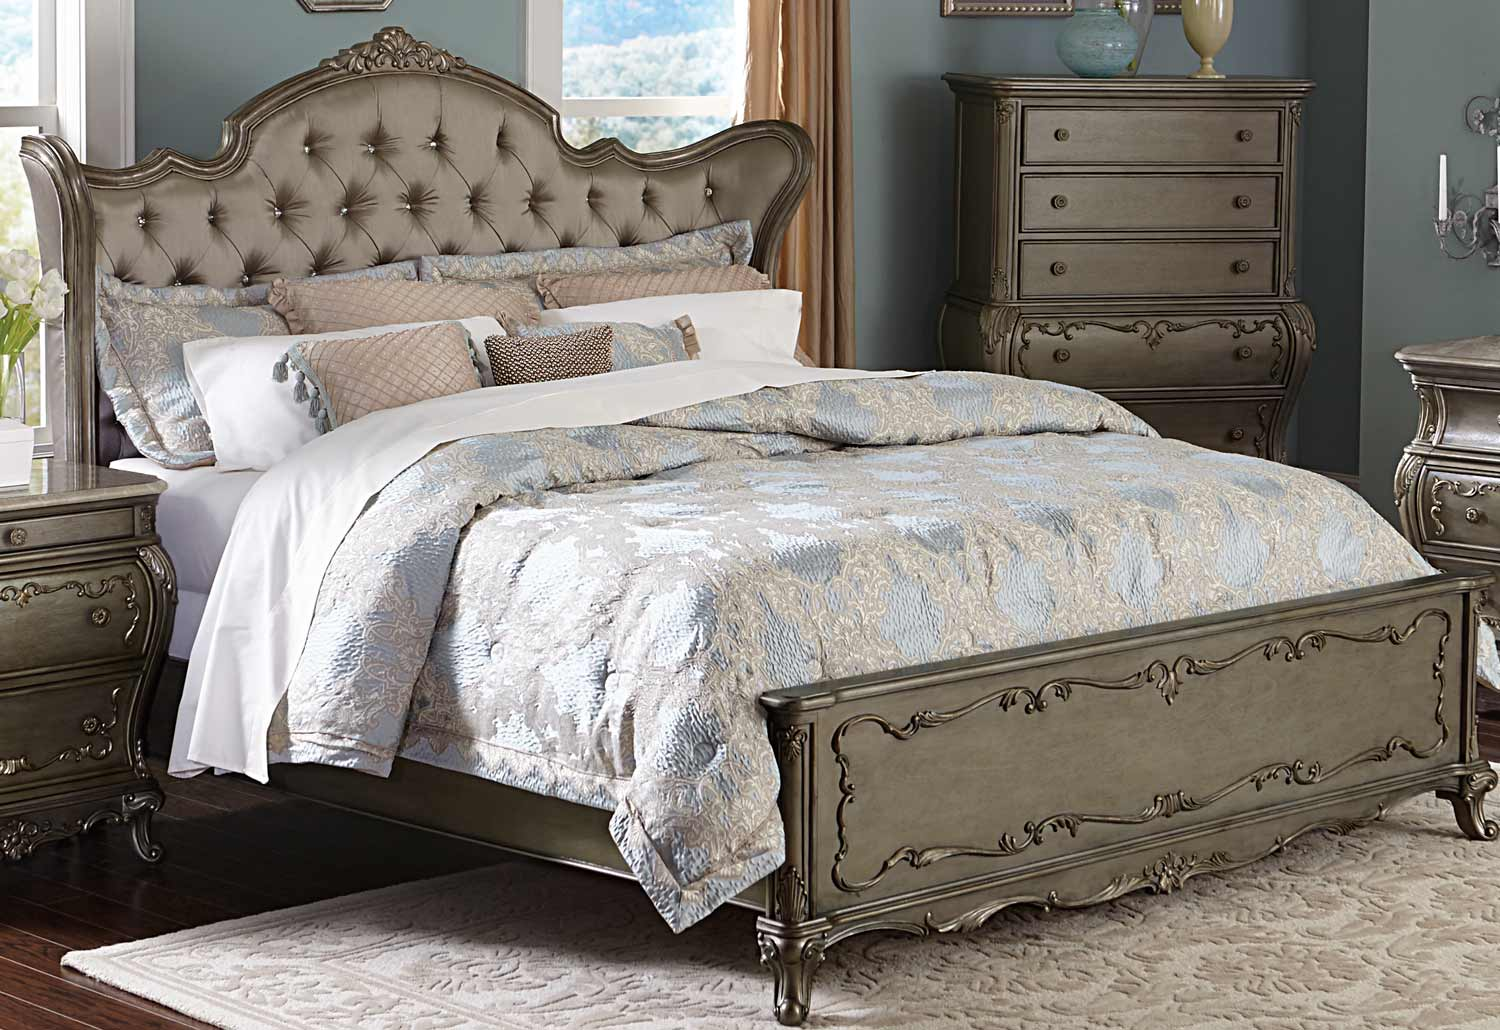 Homelegance Florentina Upholstered Bed - Silver/Gold